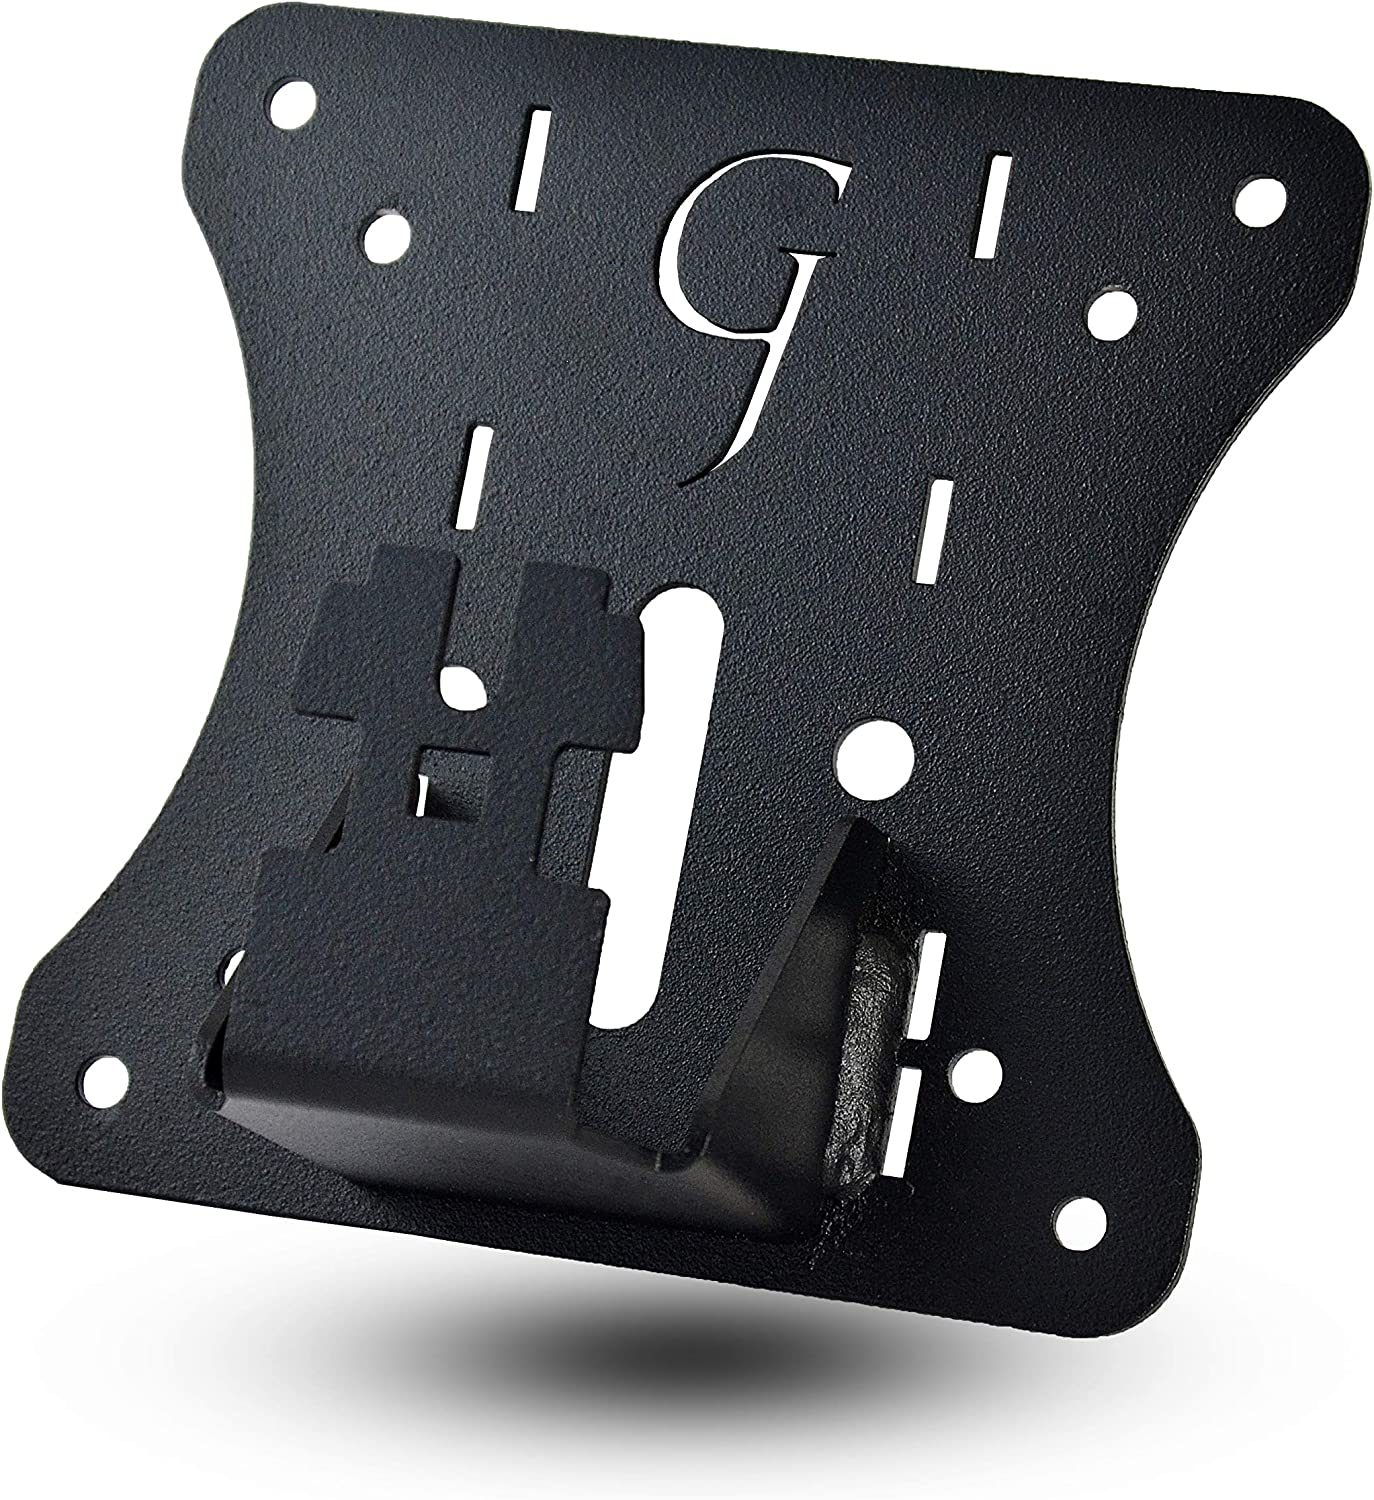 Gladiator Joe Monitor Arm/Mount VESA Bracket Adapter Compatible with Dell SE2219H, SE2219NX, SE2319HN, SE2419H, SE2419HN, SE2719H, SE2719NX Monitors - 100% Made in North America